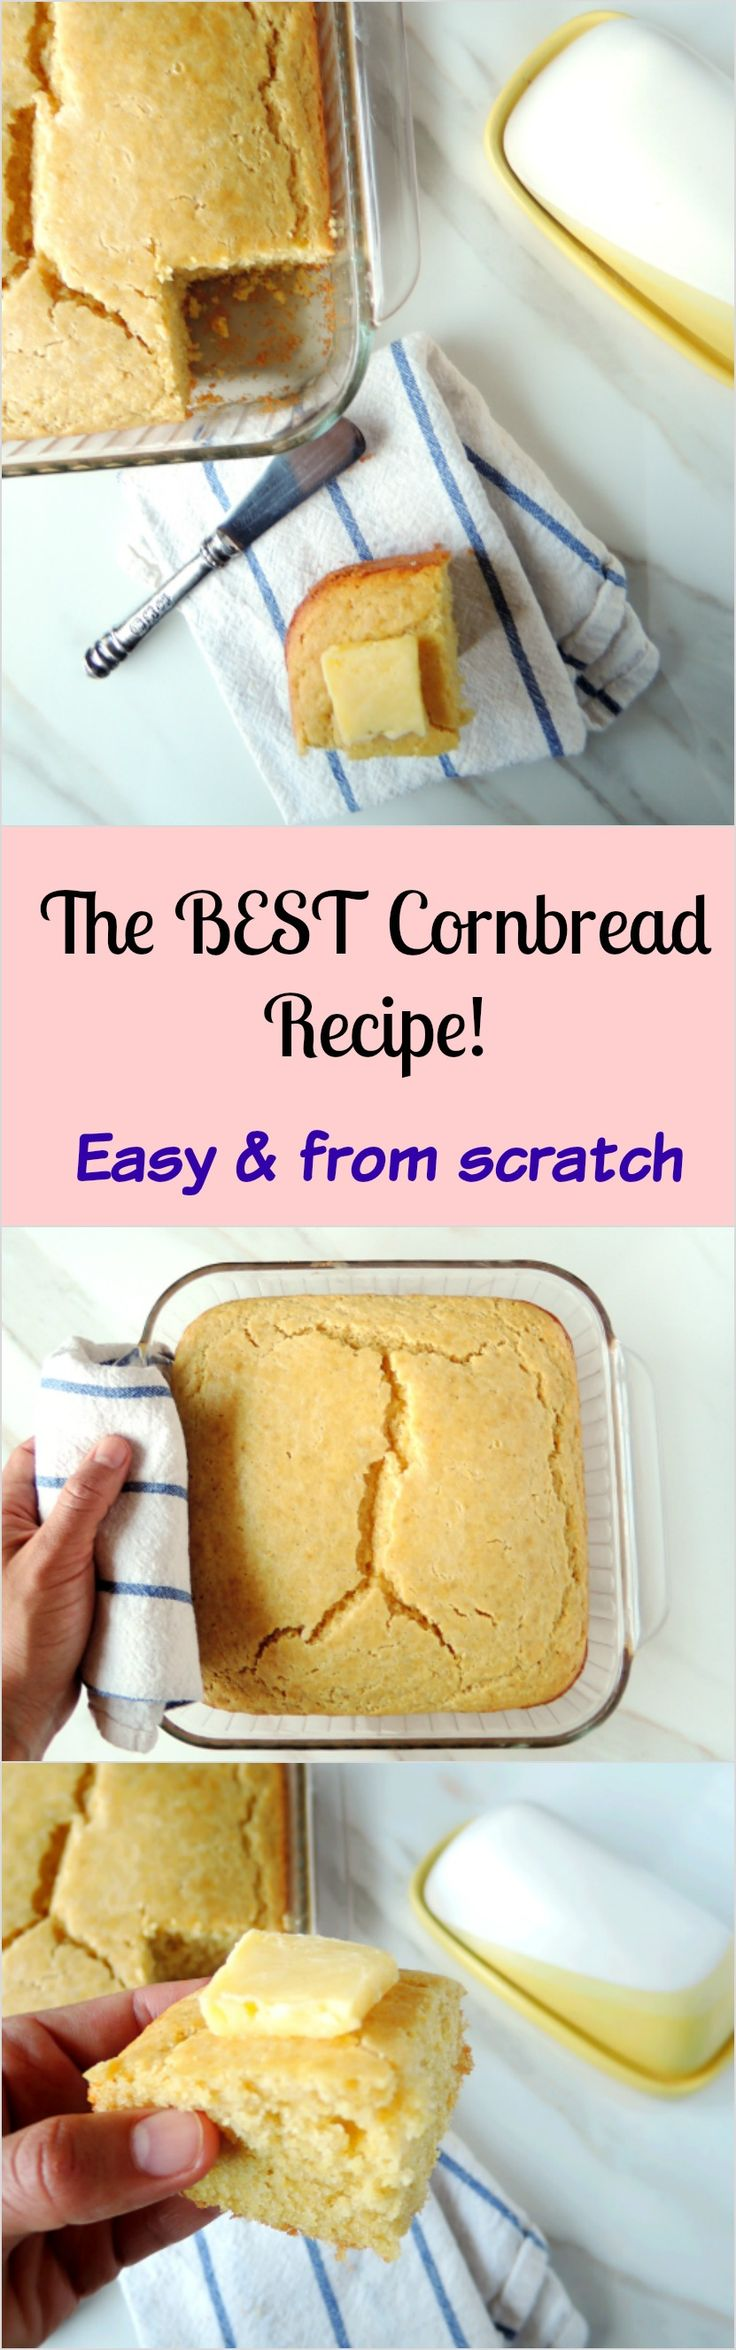 The best and only cornbread recipe you will ever need! So simple, moist and from scratch!